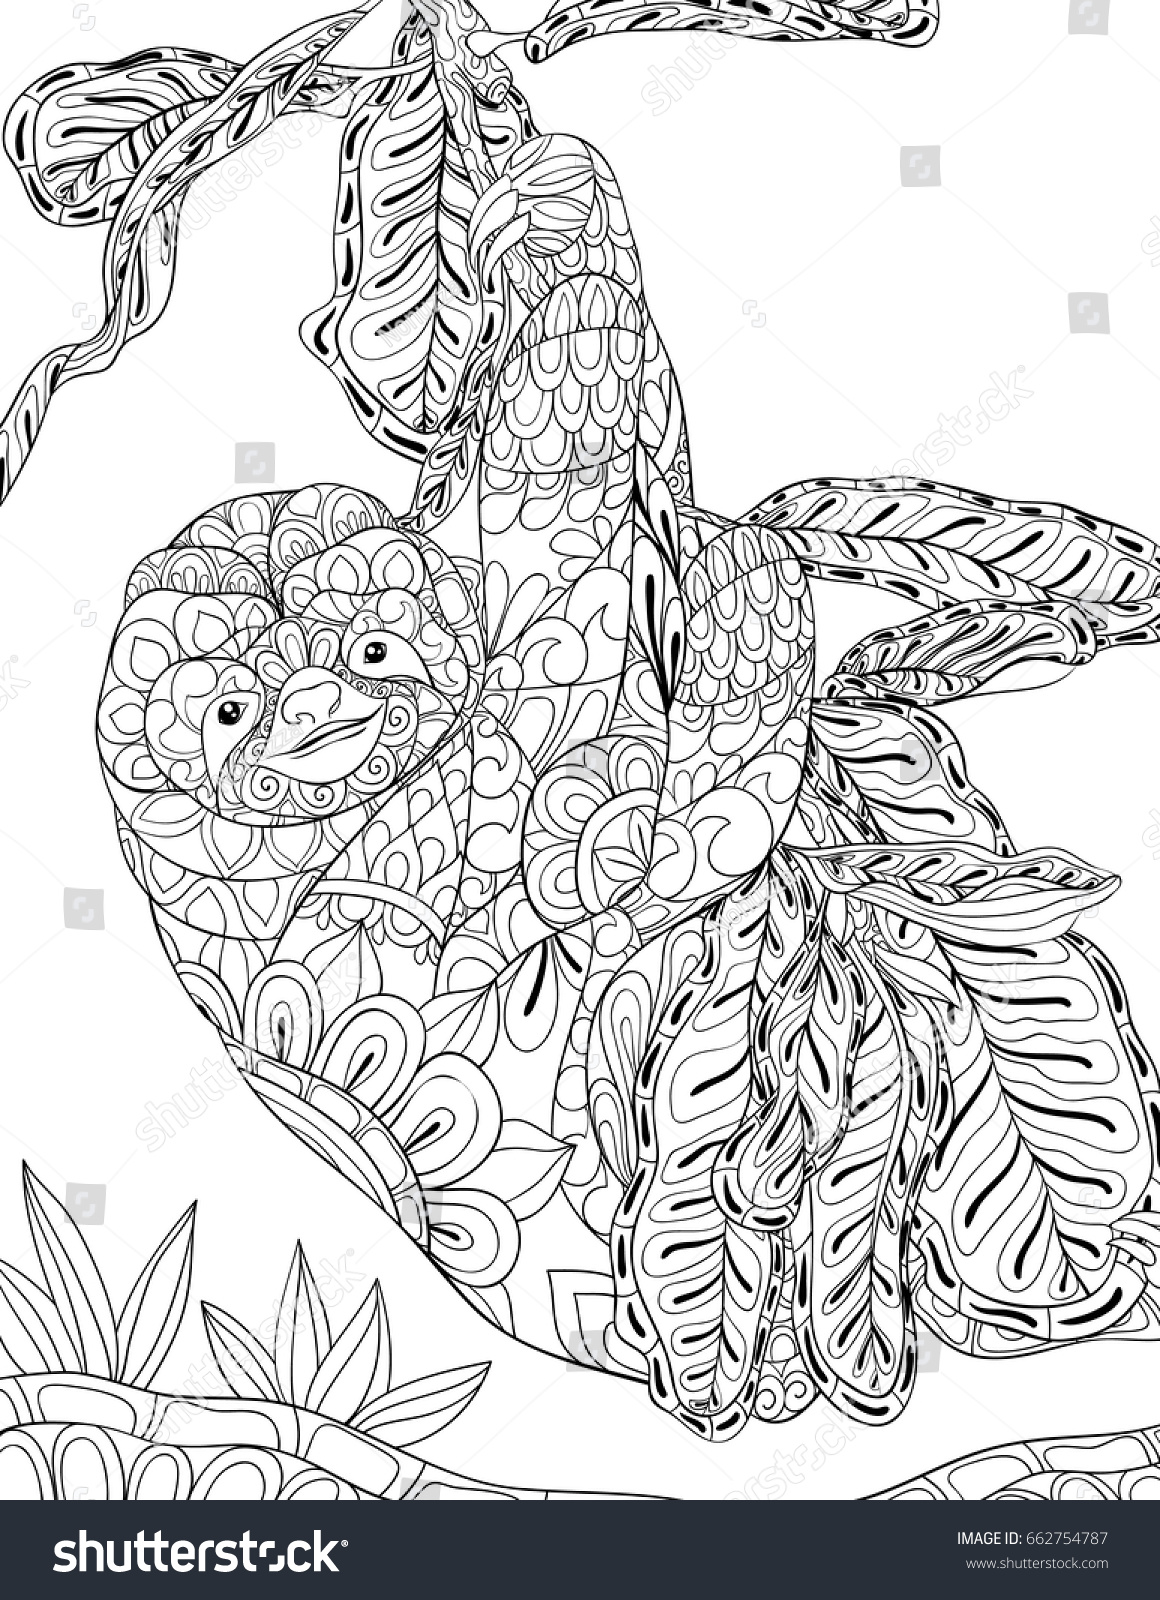 Sloth Coloring Pages For Adults Www Topsimages Com